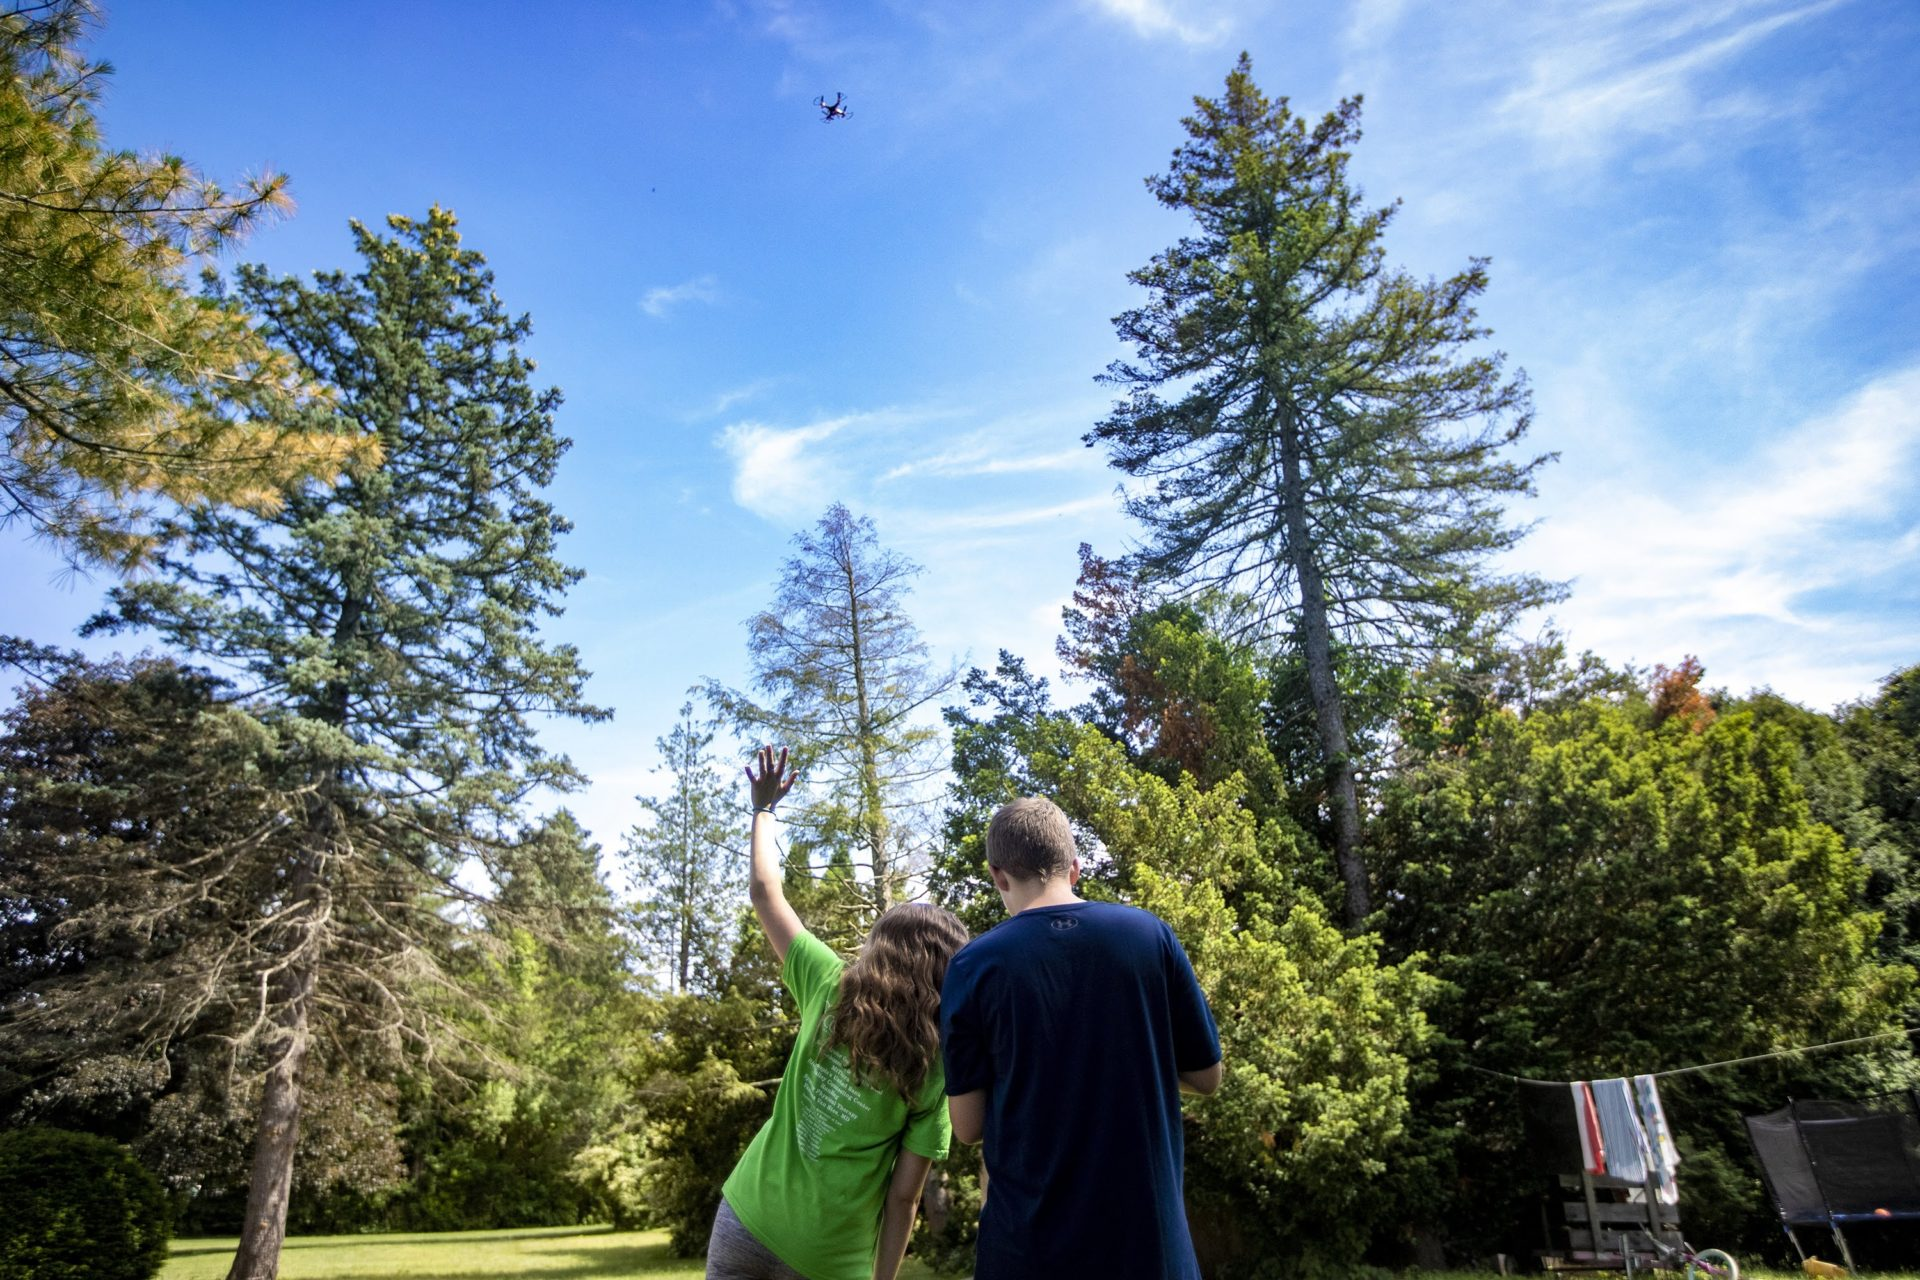 Emily, 13, waves at the drone that her brother Charlie, 12, is flying high above their heads in the backyard of their home in West Springfield. (Jesse Costa/WBUR)